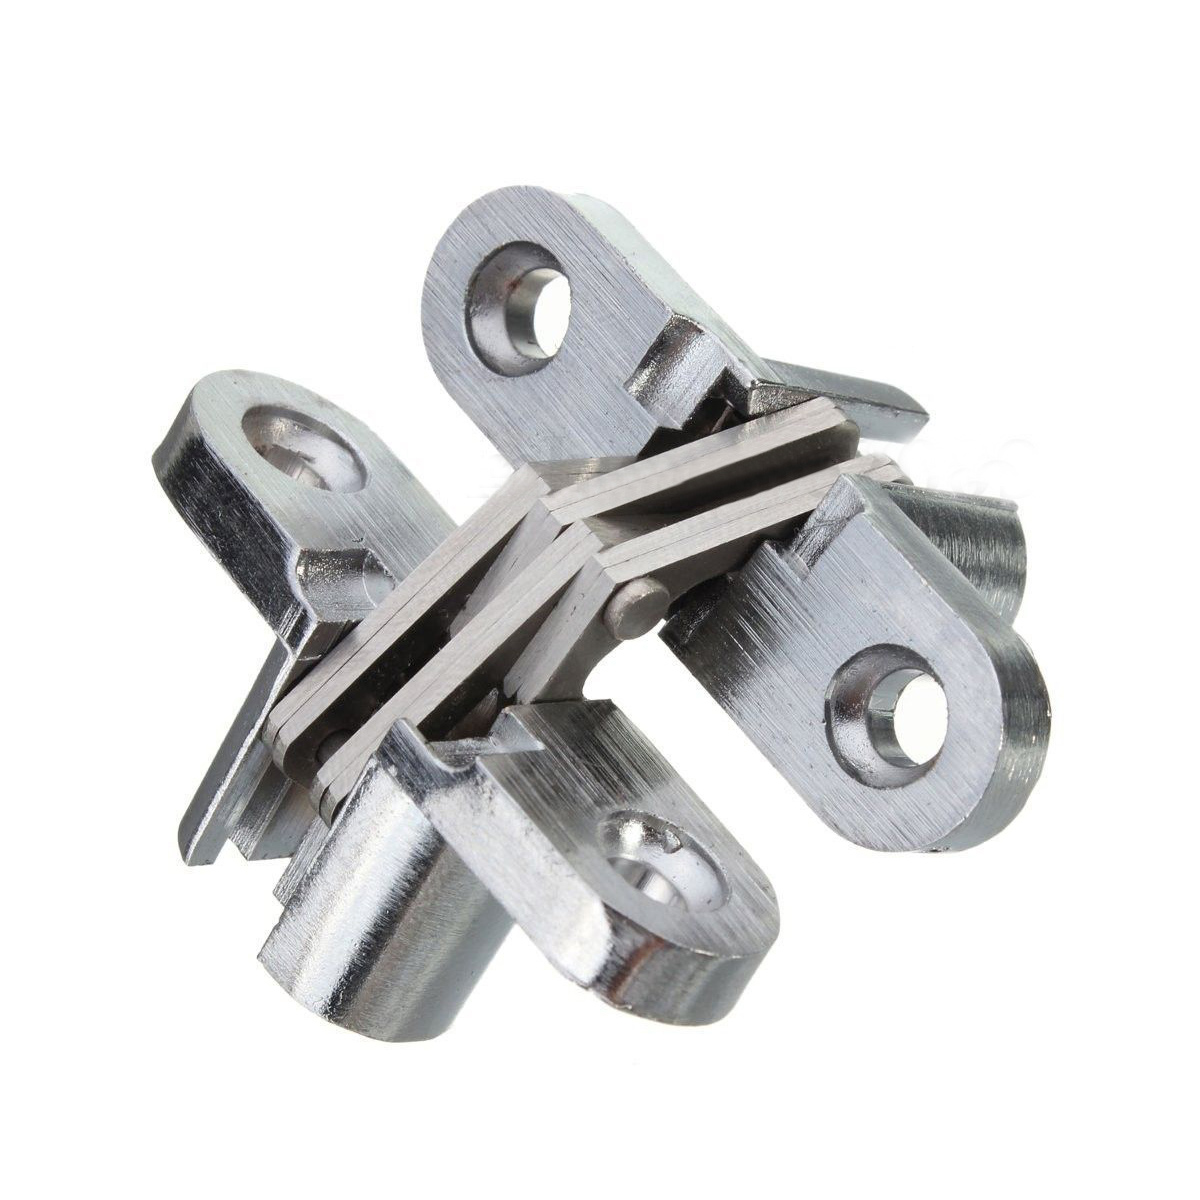 zinc kitchen cabinets f1240 2pcs hinge stainless steel invisible hinges 1240